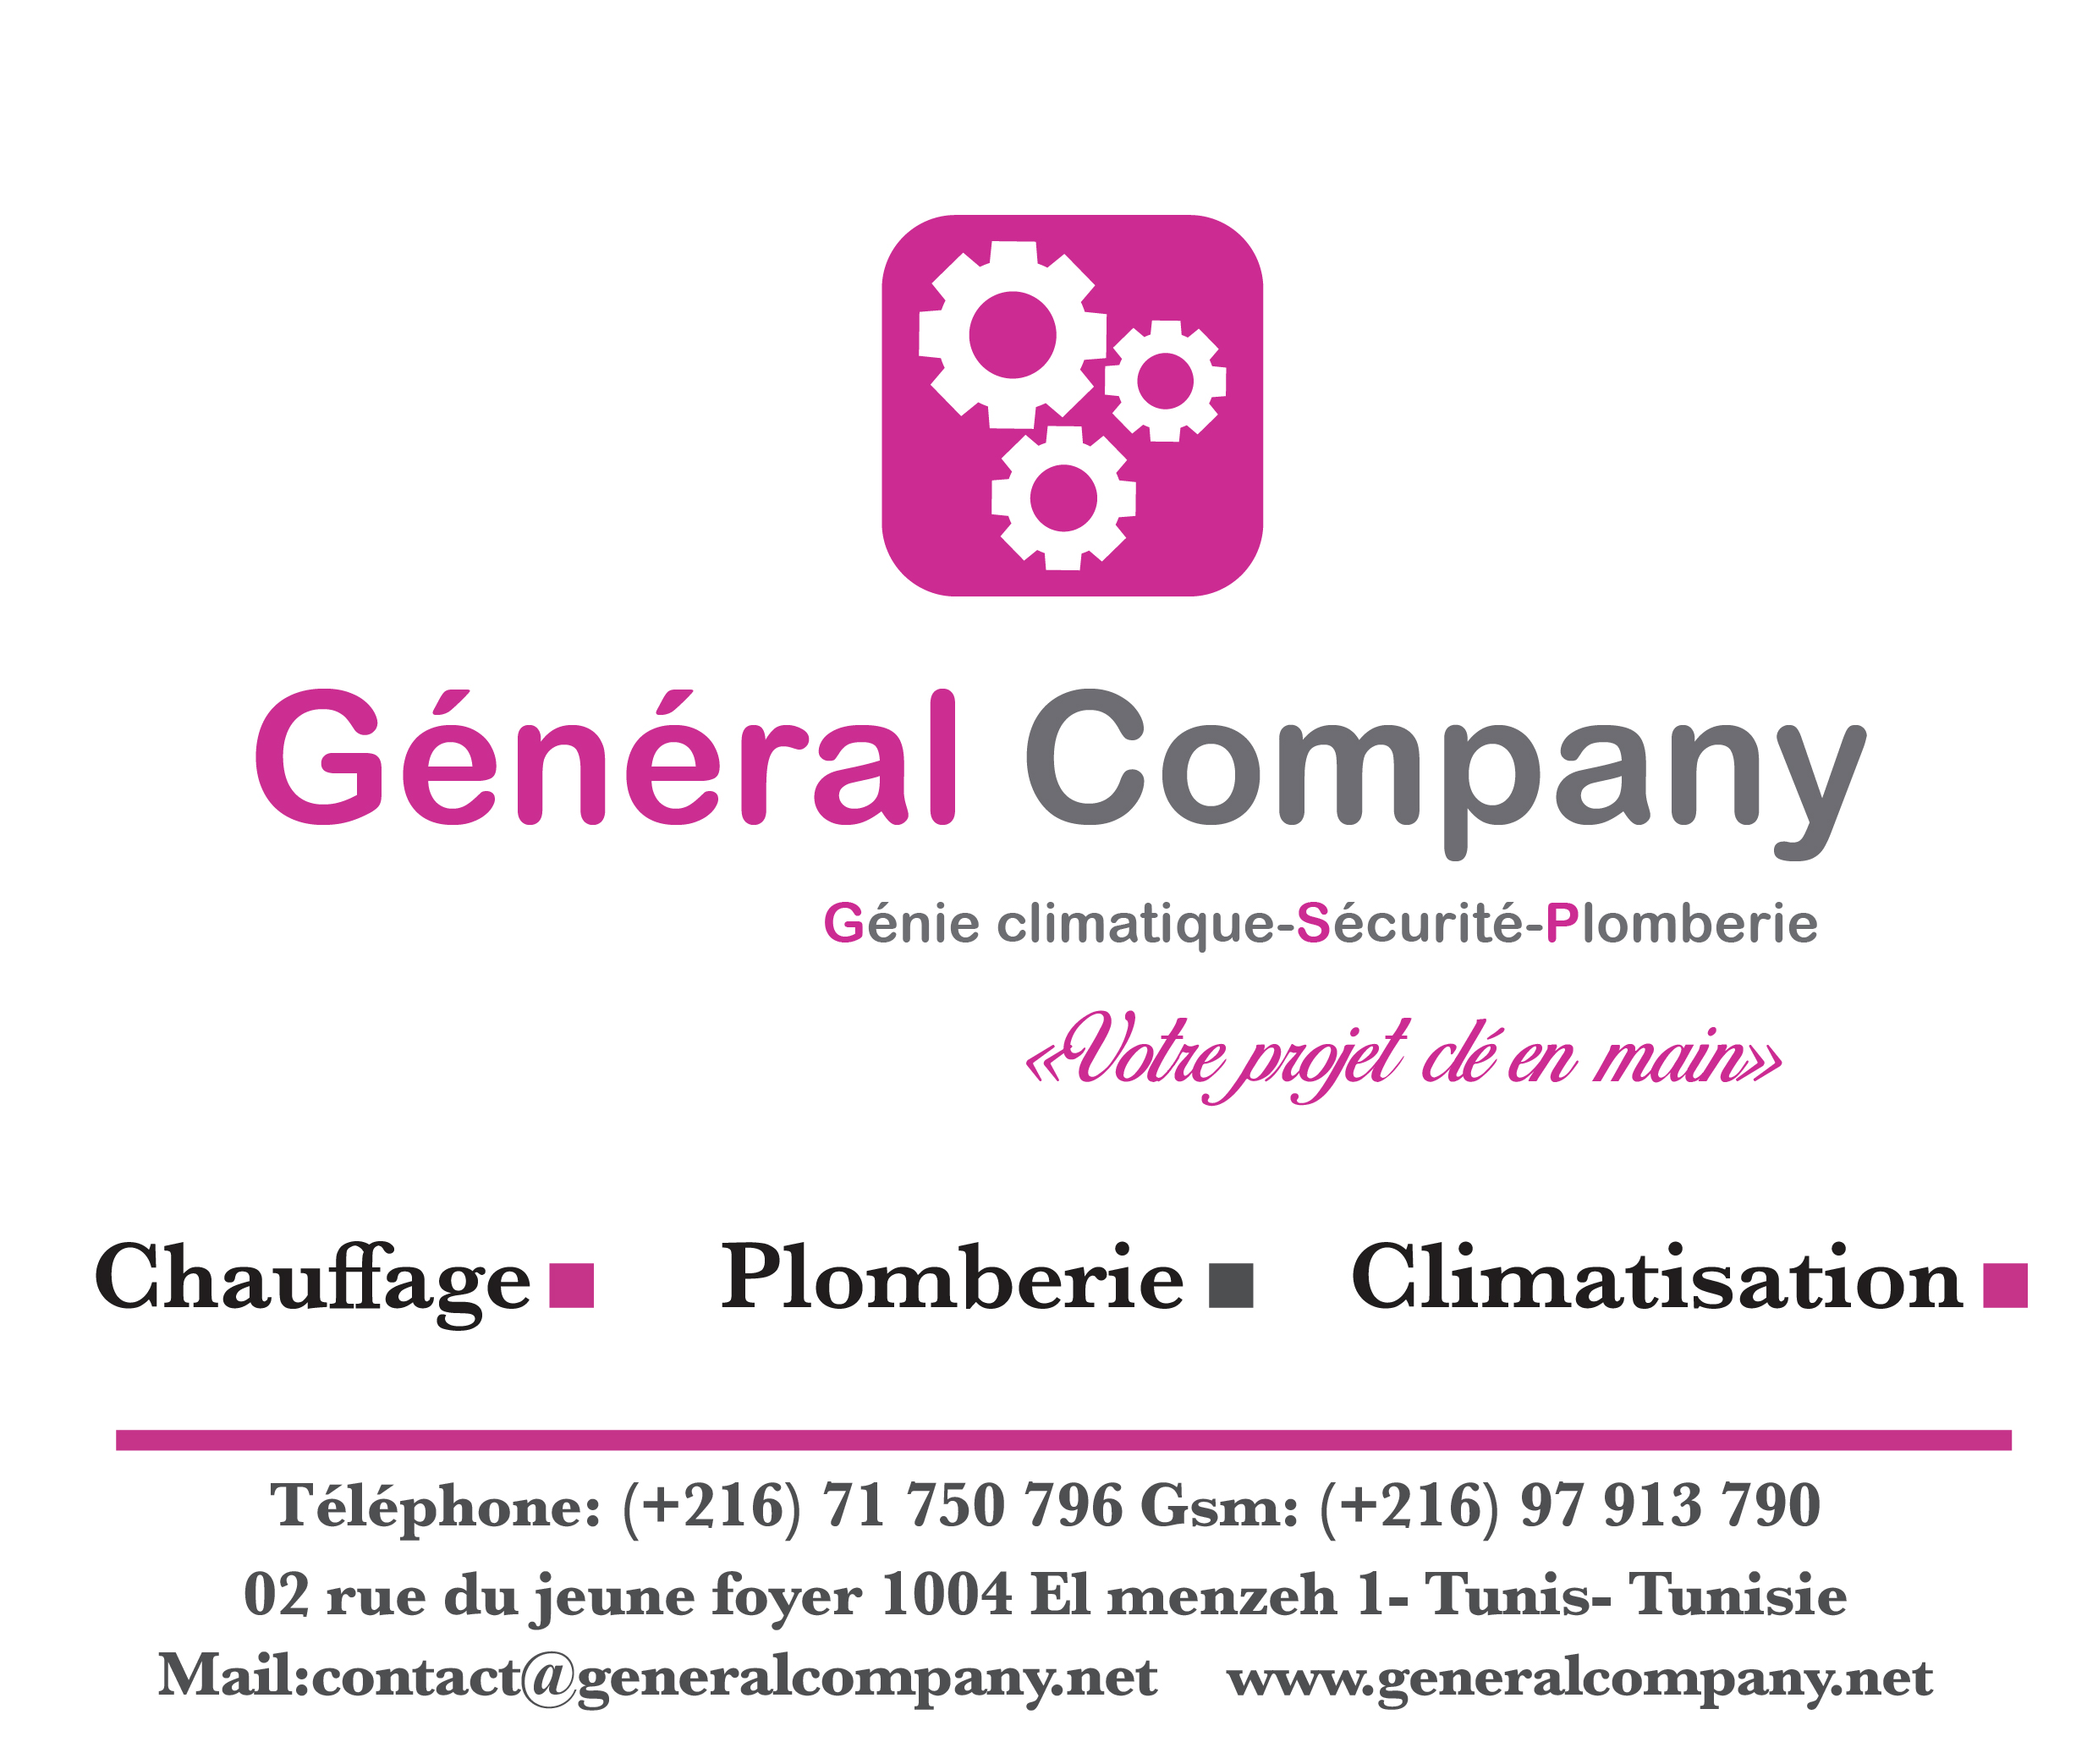 GENERAL COMPANY